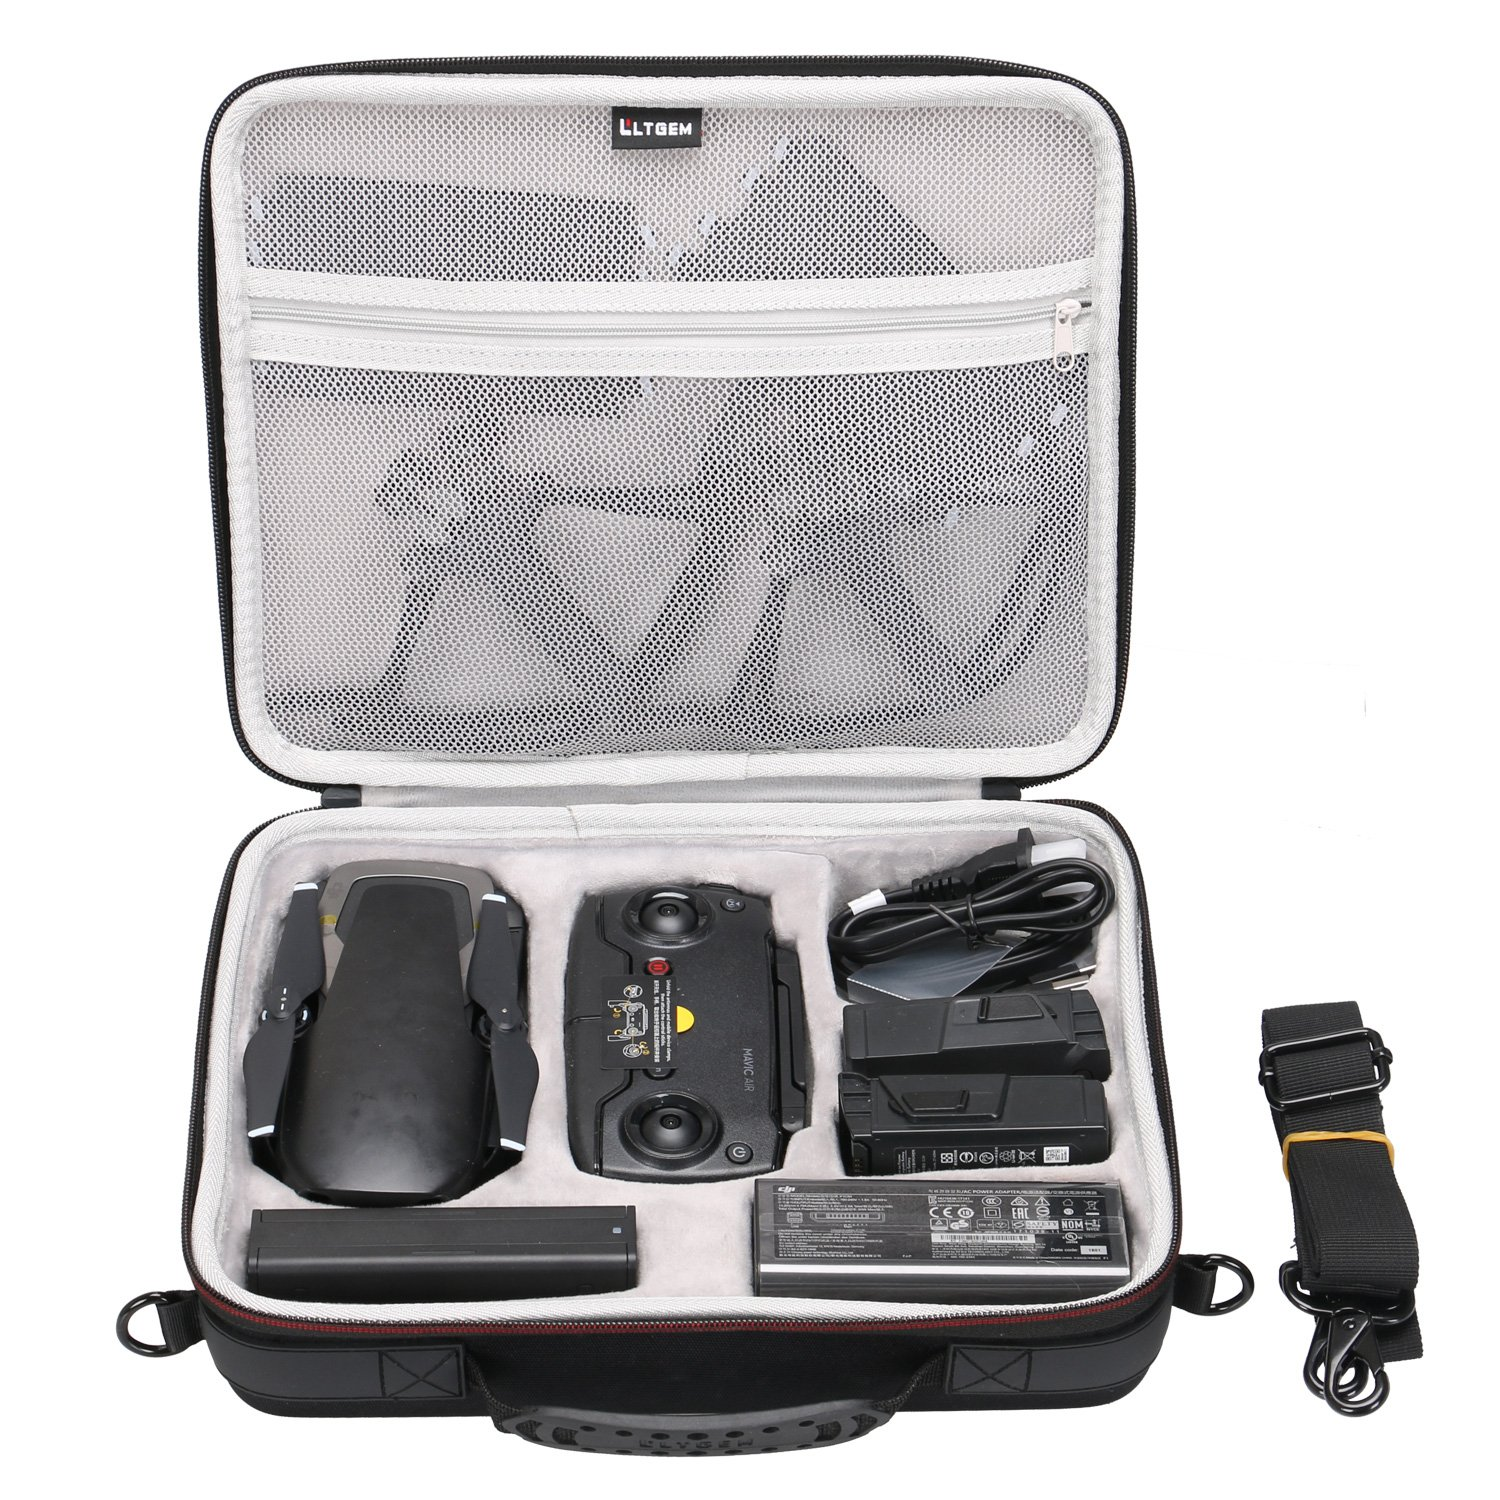 LTGEM EVA Hard Case for DJI Mavic Air Drone - Fits Drone, Batteries, Controller, Charger and Accessories CS228